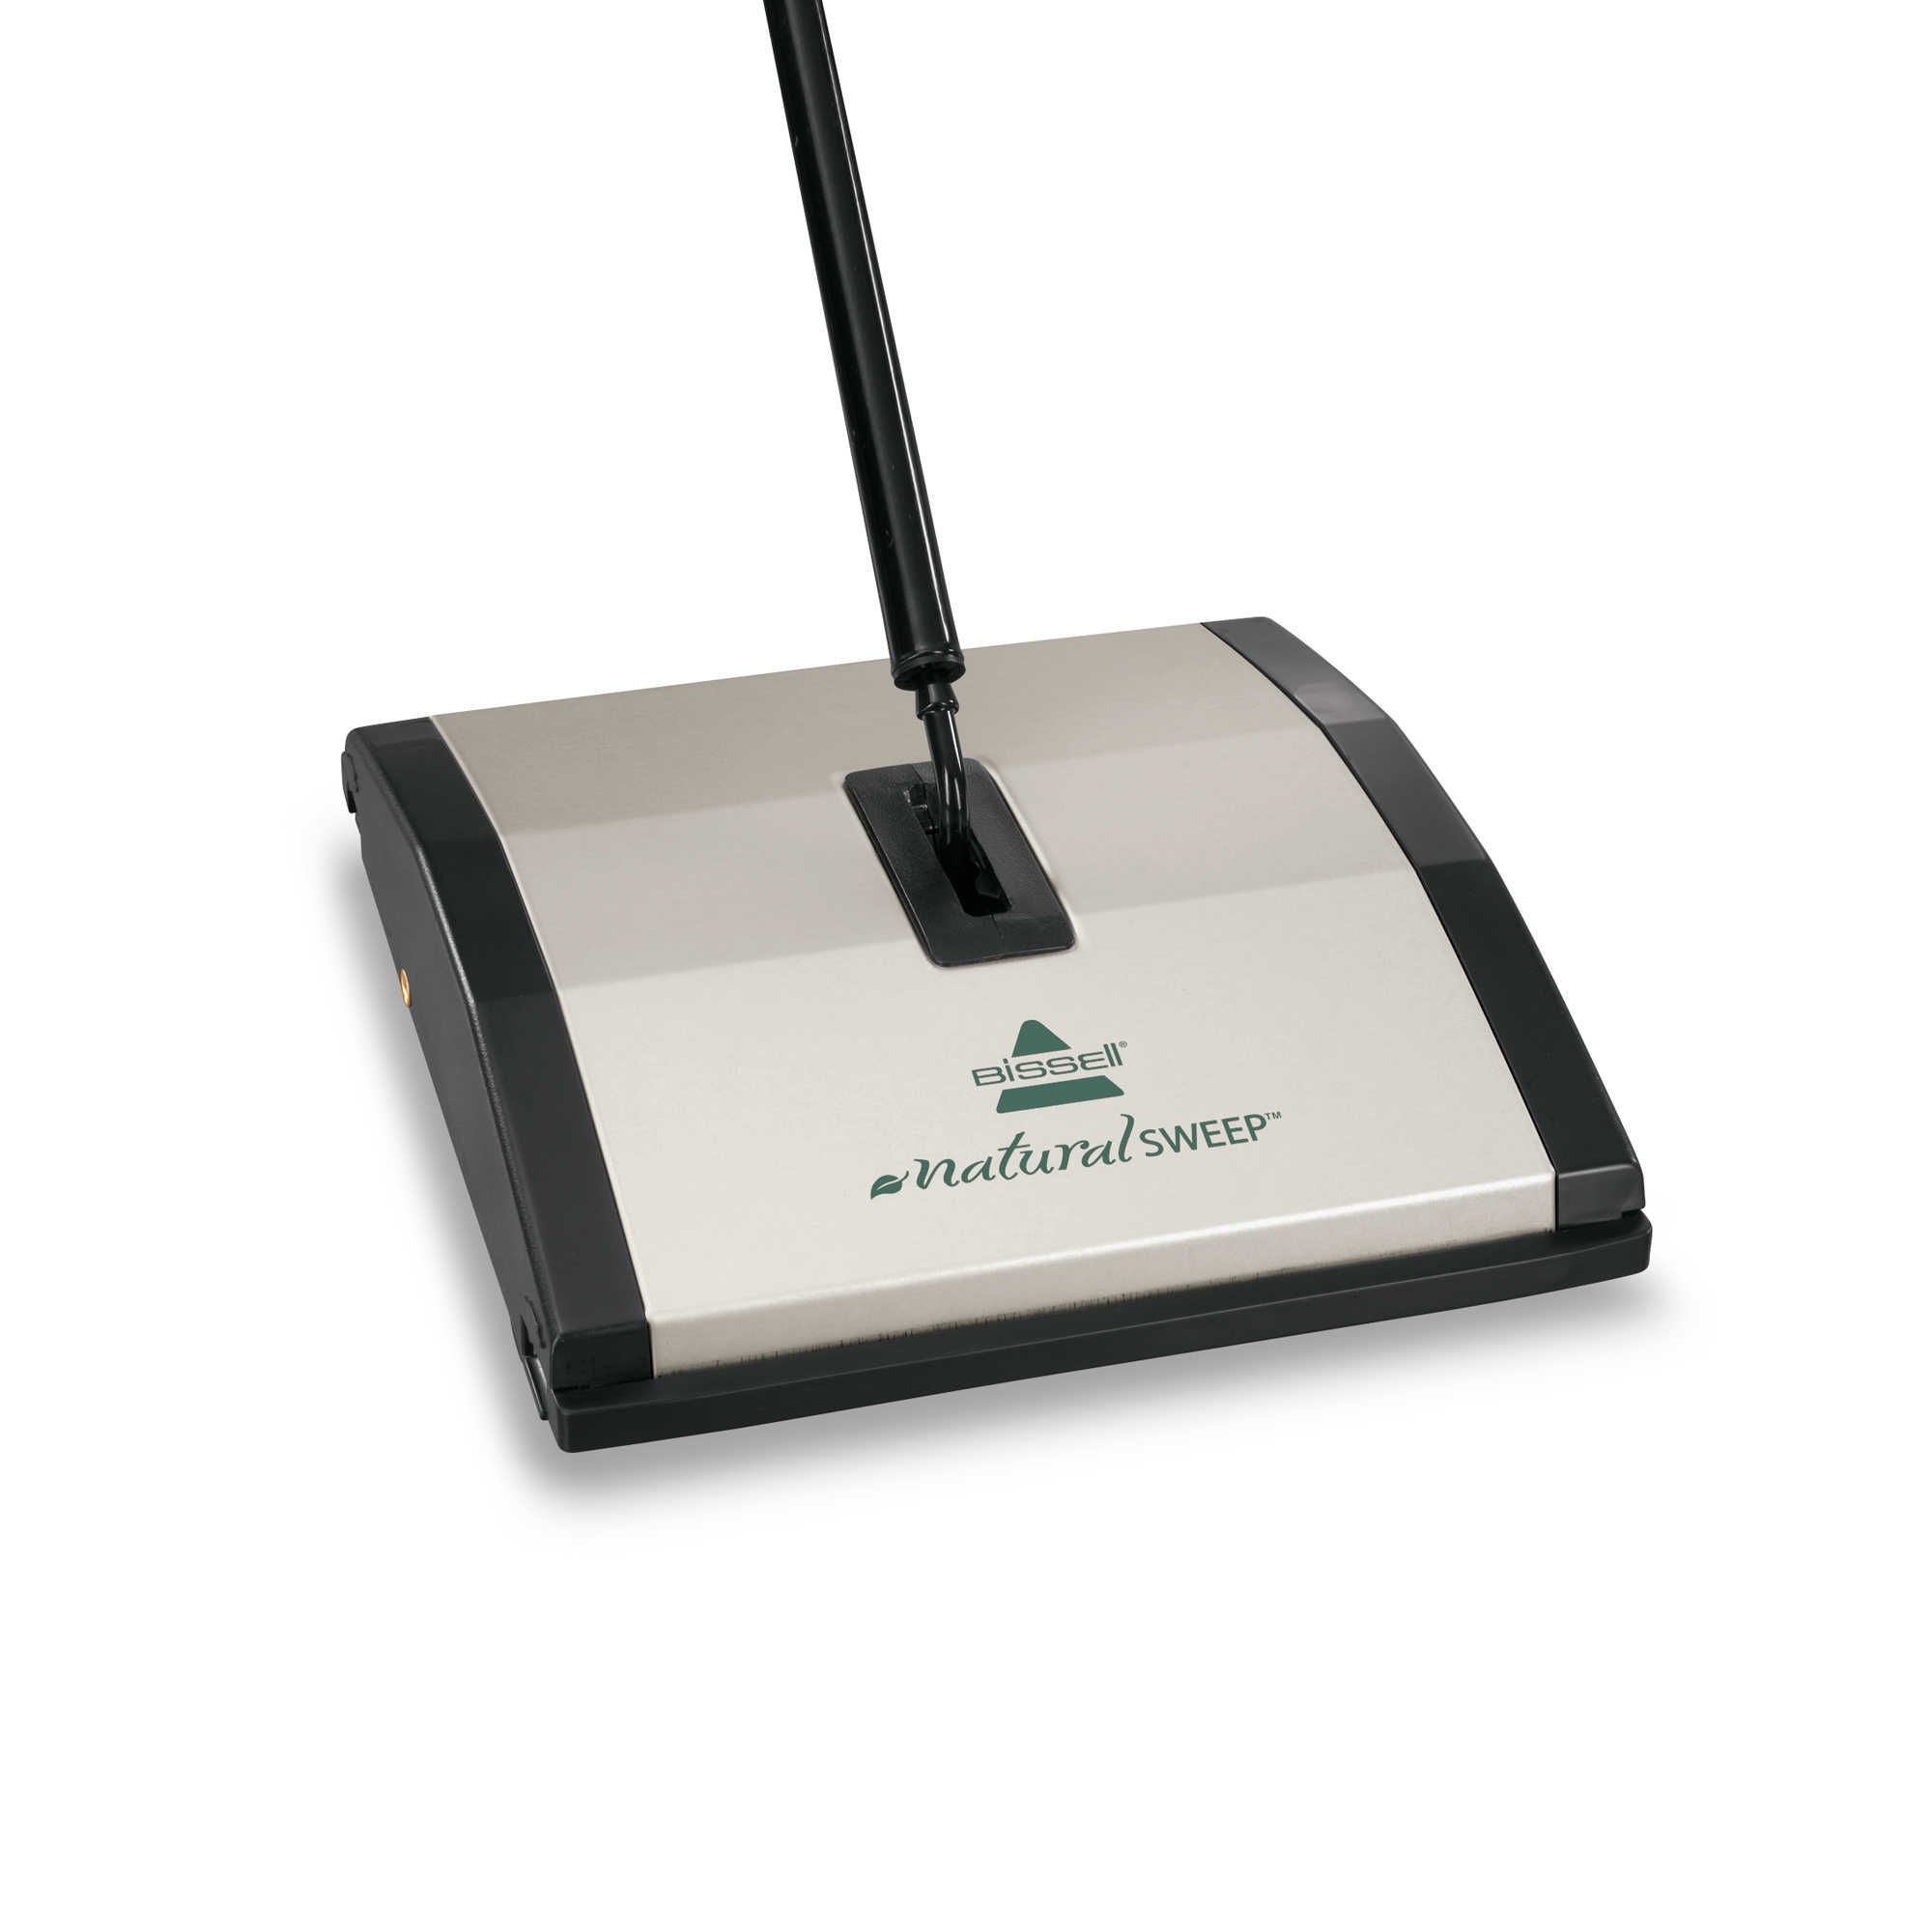 Dyson vacuum cleaners at bed bath and beyond - Image Of Bissell Natural Sweep Dual Brush Sweeper